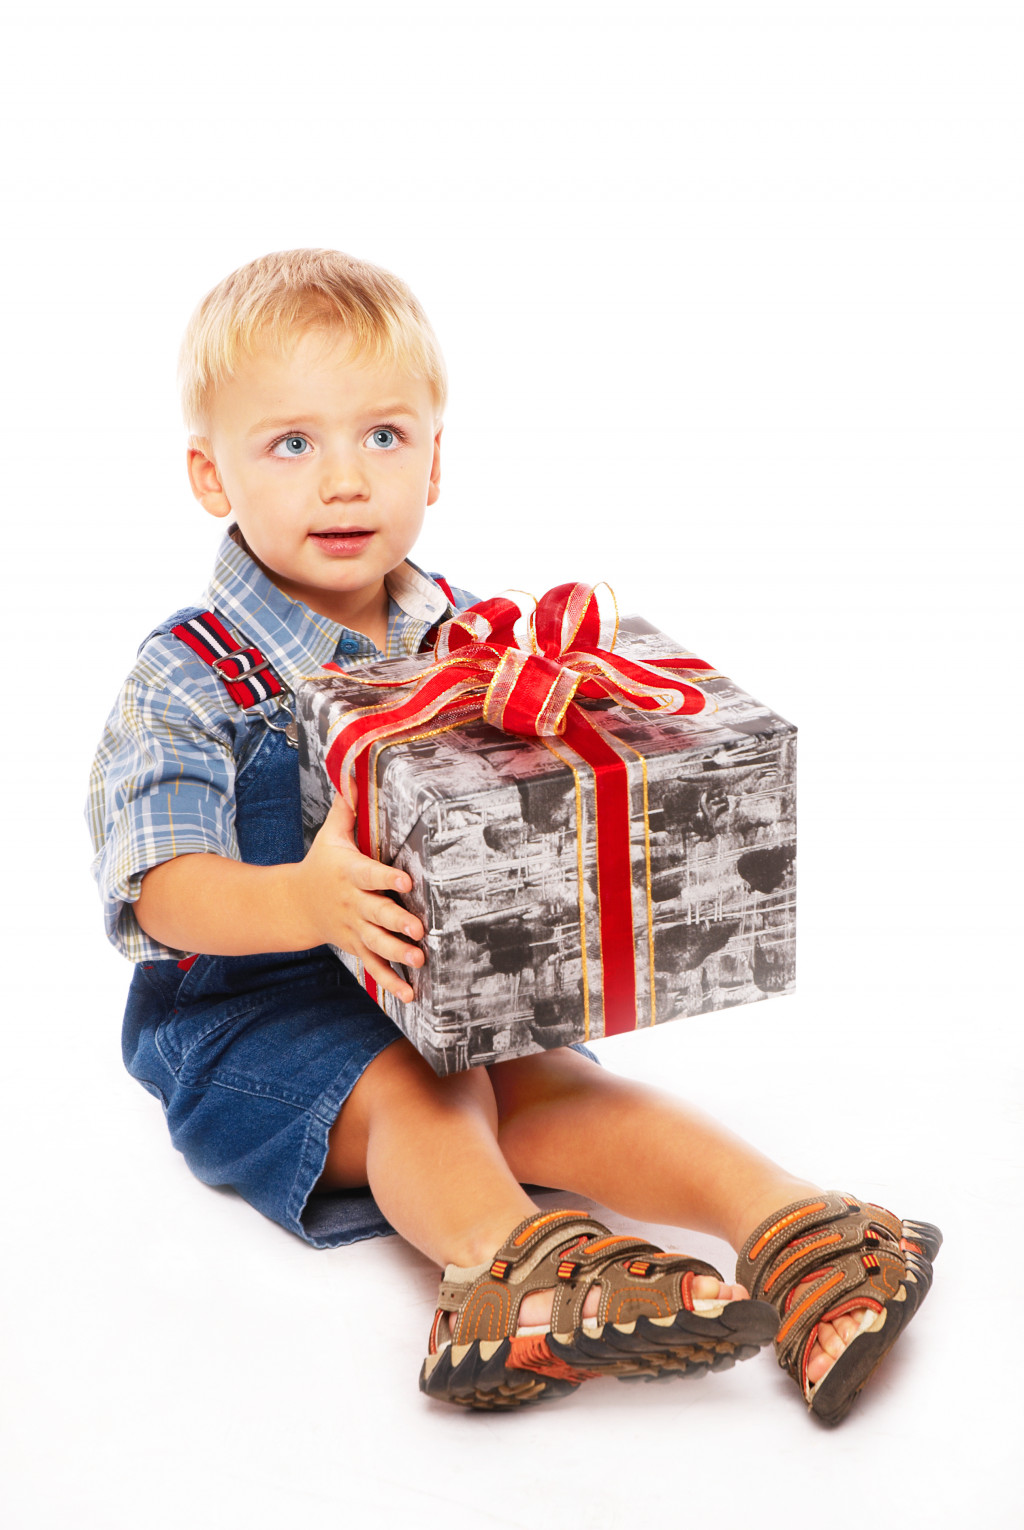 Best Birthday and Christmas Gift Ideas for a Three Year ...